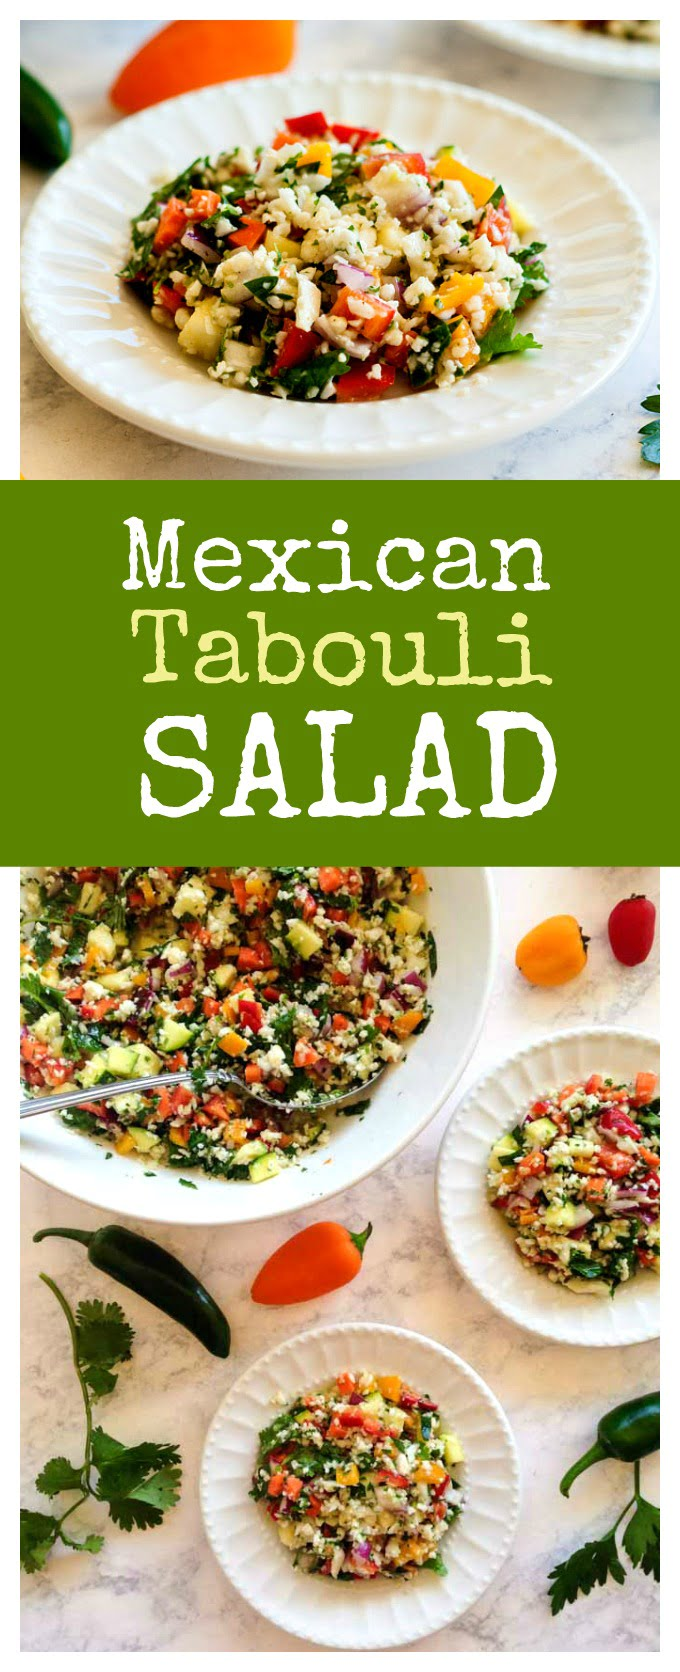 Mexican Food With Using Cilantro And Lime Juice